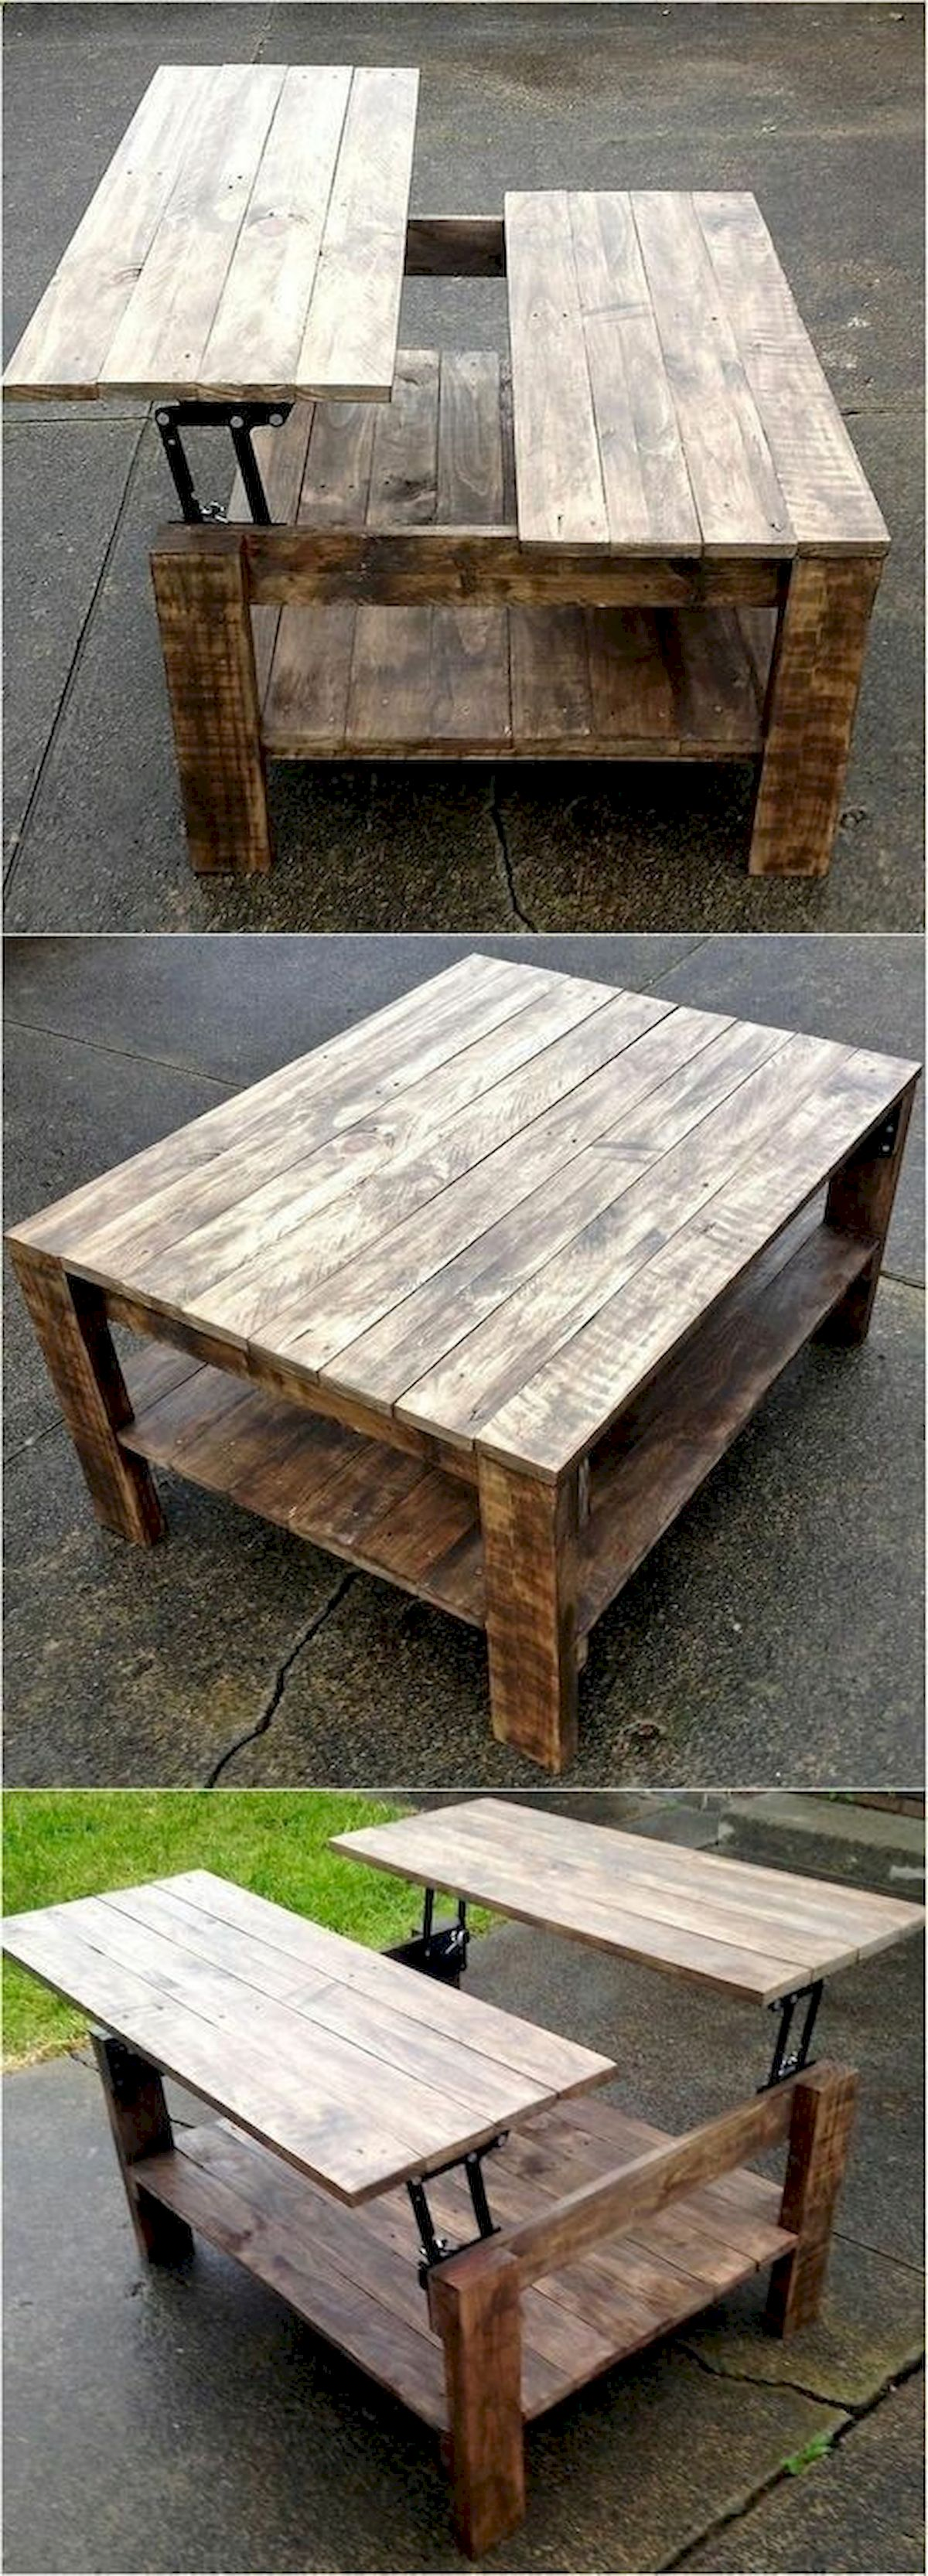 60 Easy DIY Wood Furniture Projects Ideas (8)